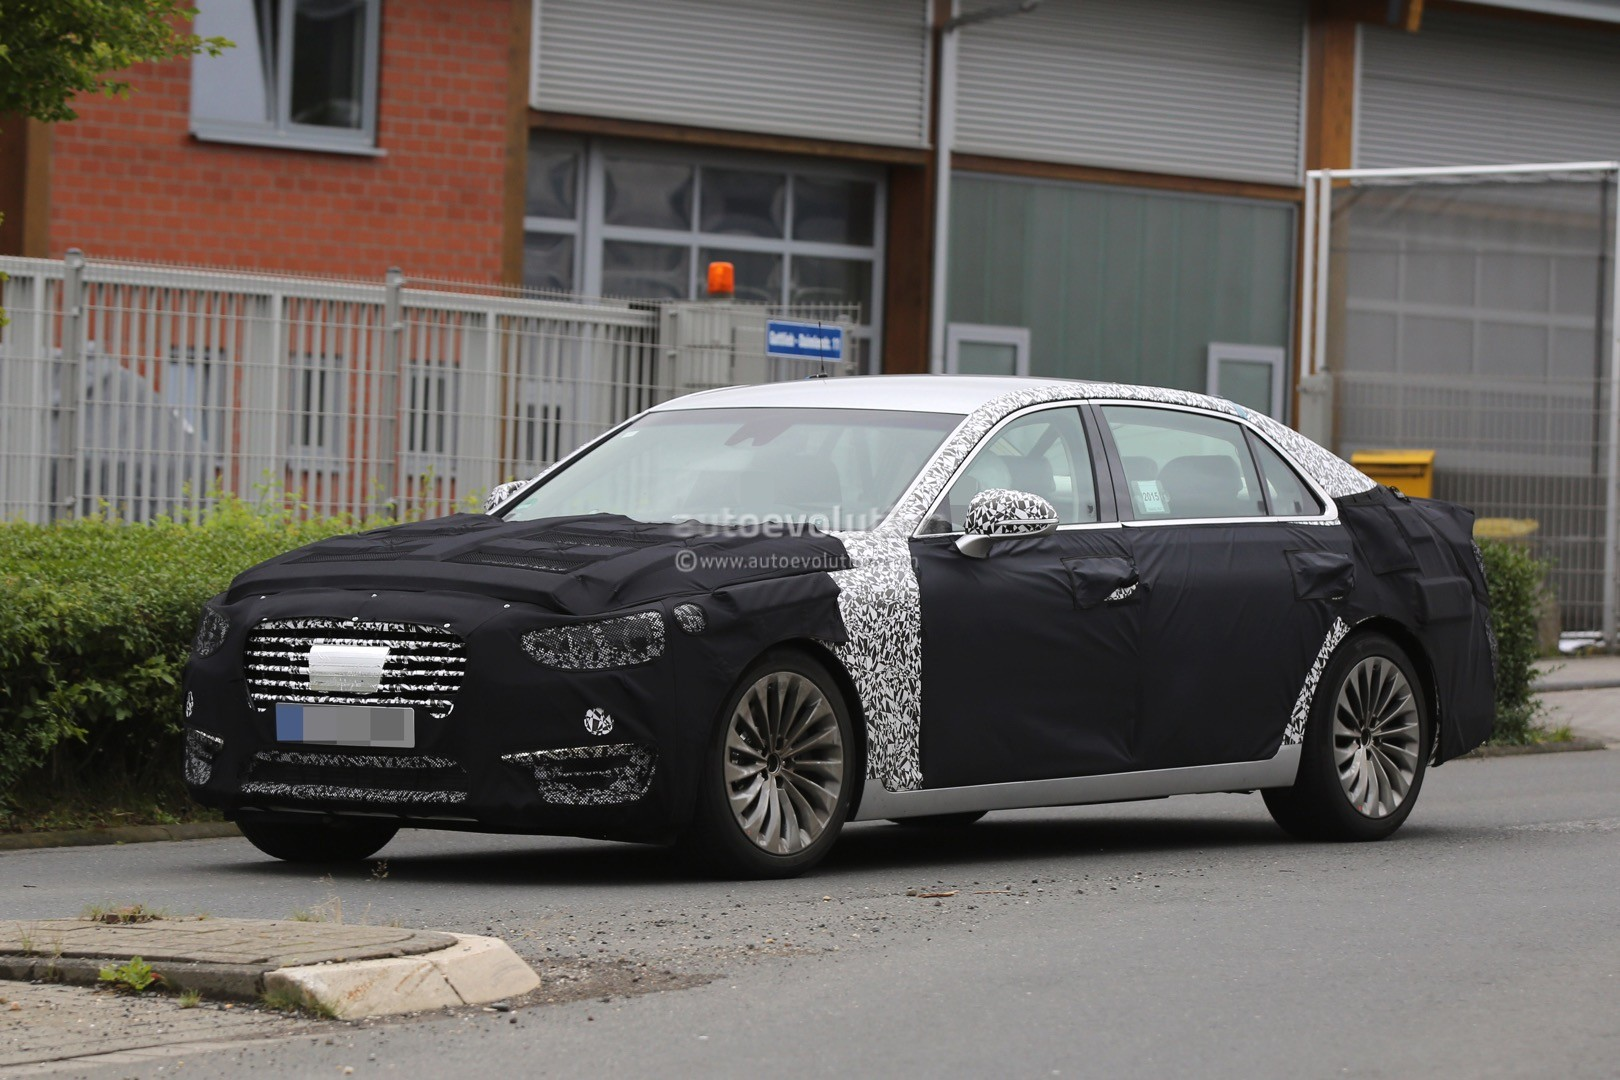 2017 hyundai equus spied out testing in germany autoevolution. Black Bedroom Furniture Sets. Home Design Ideas